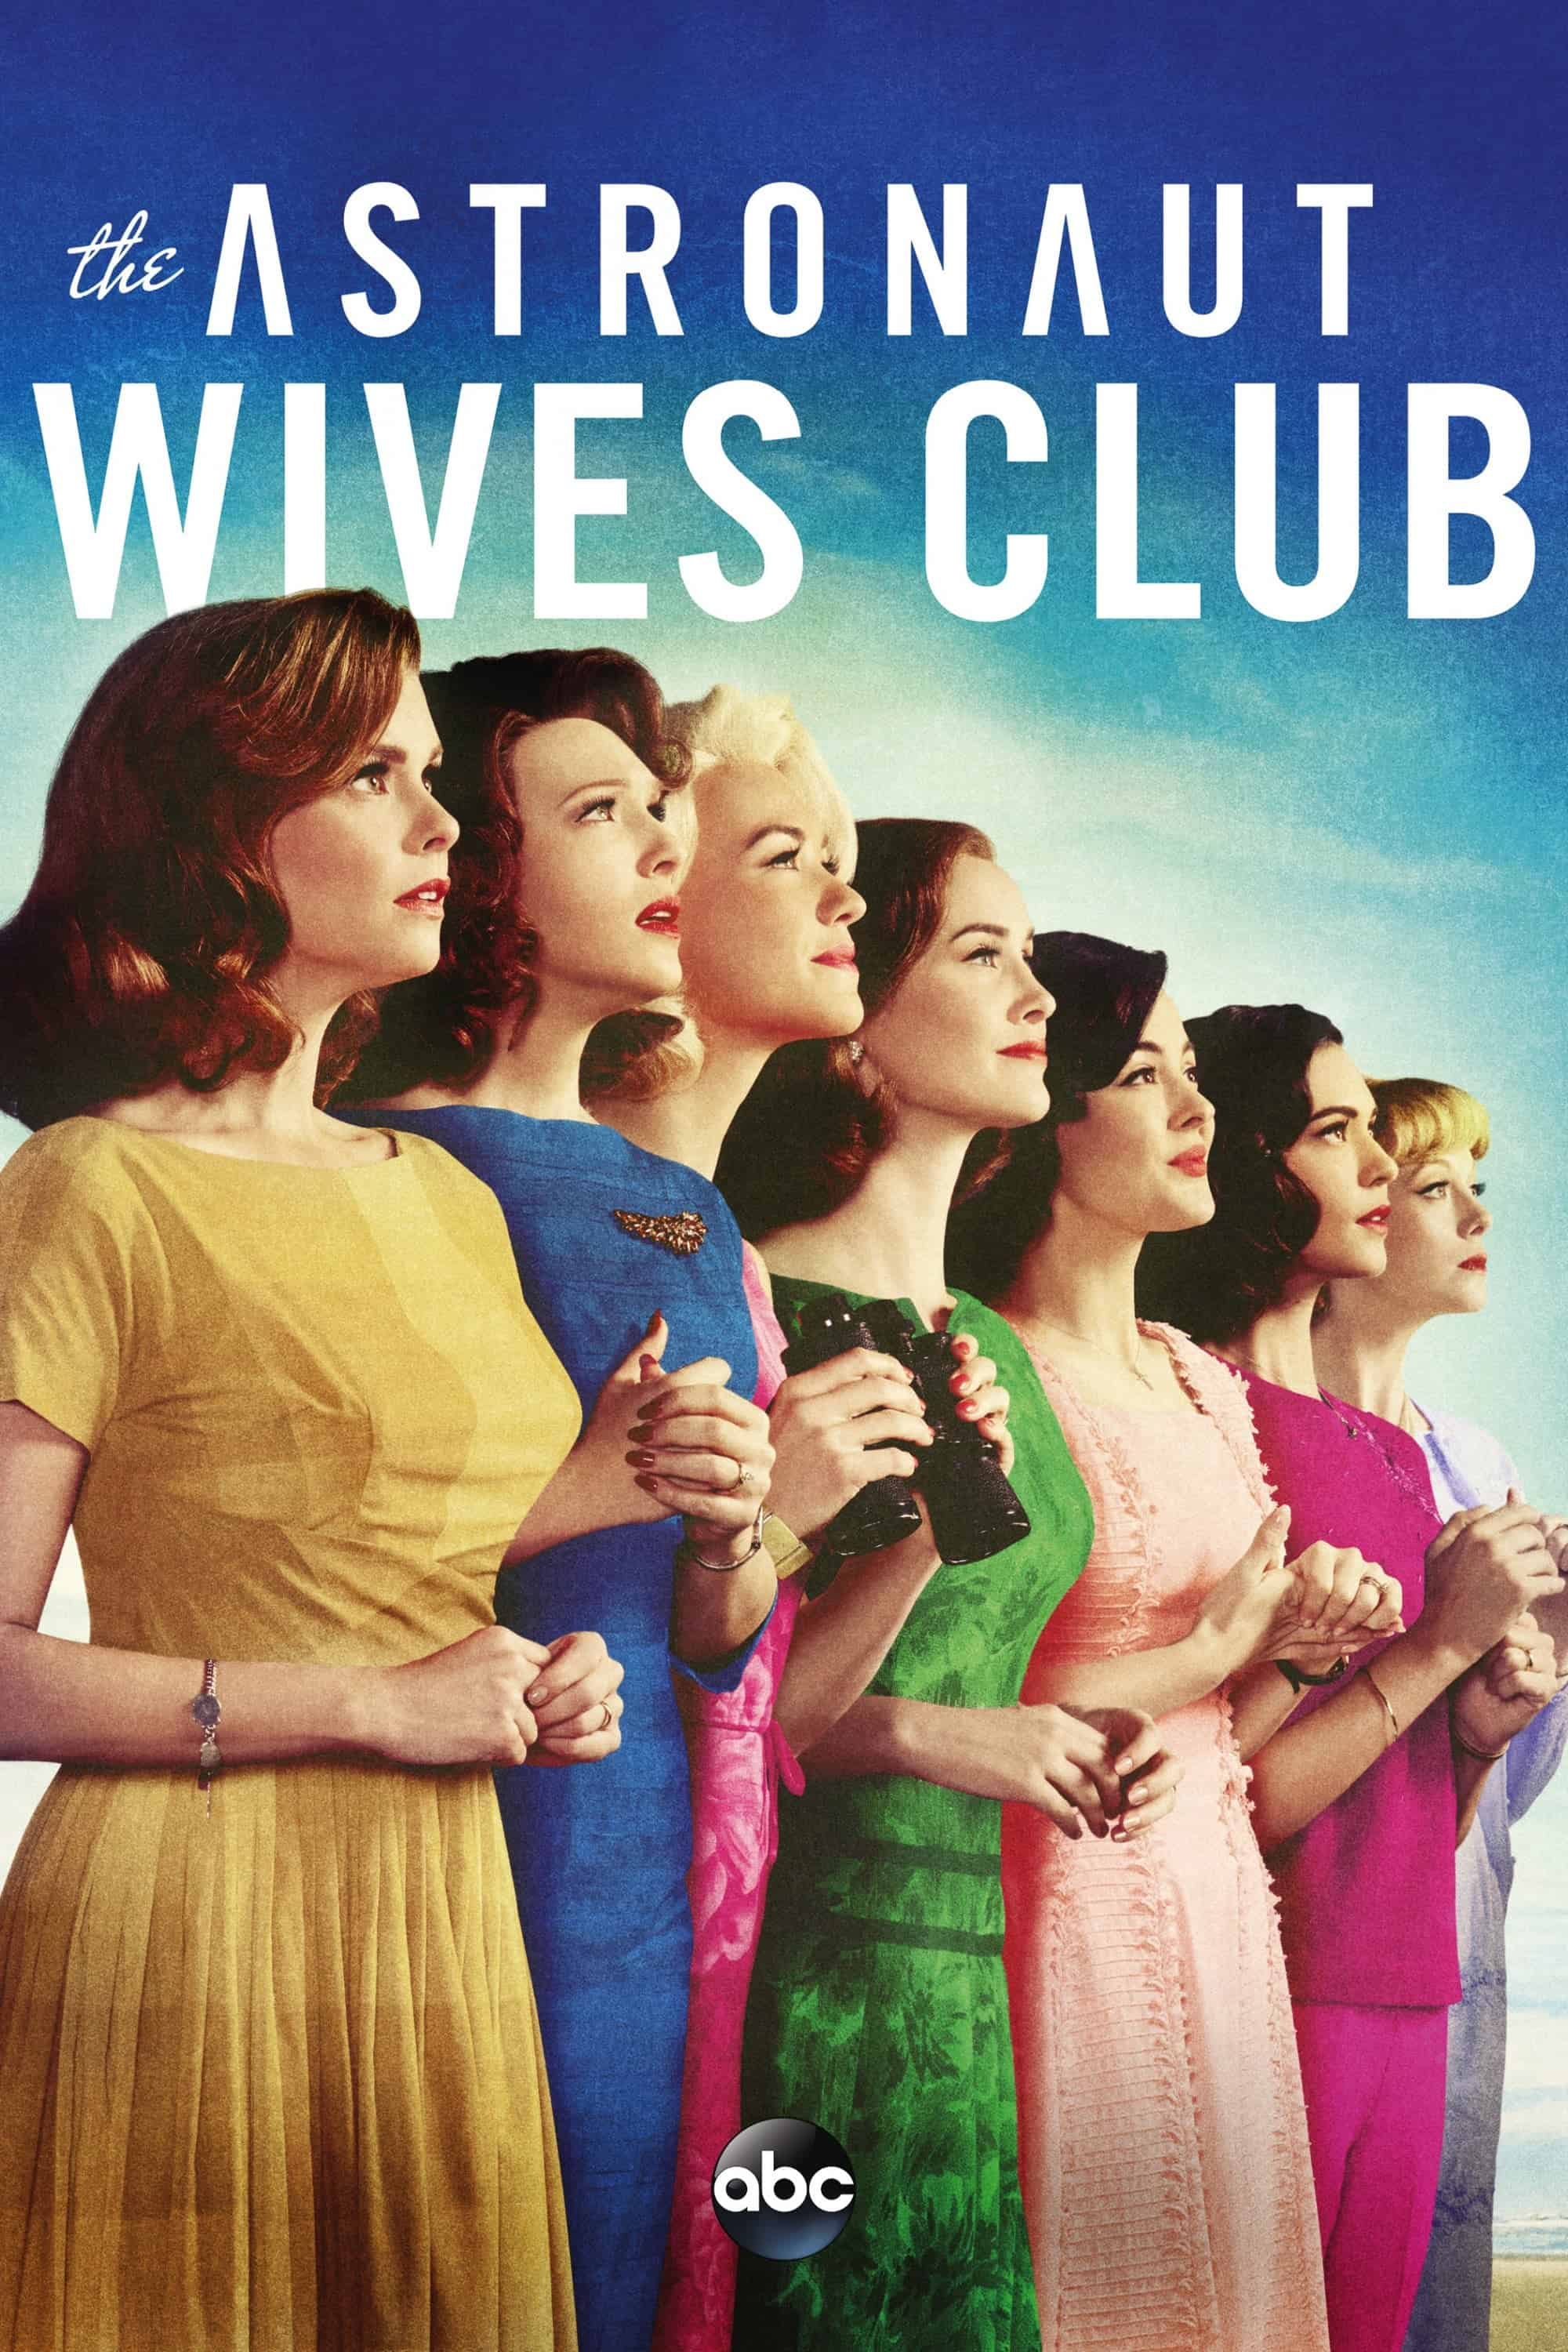 The Astronaut Wives Club, 2015